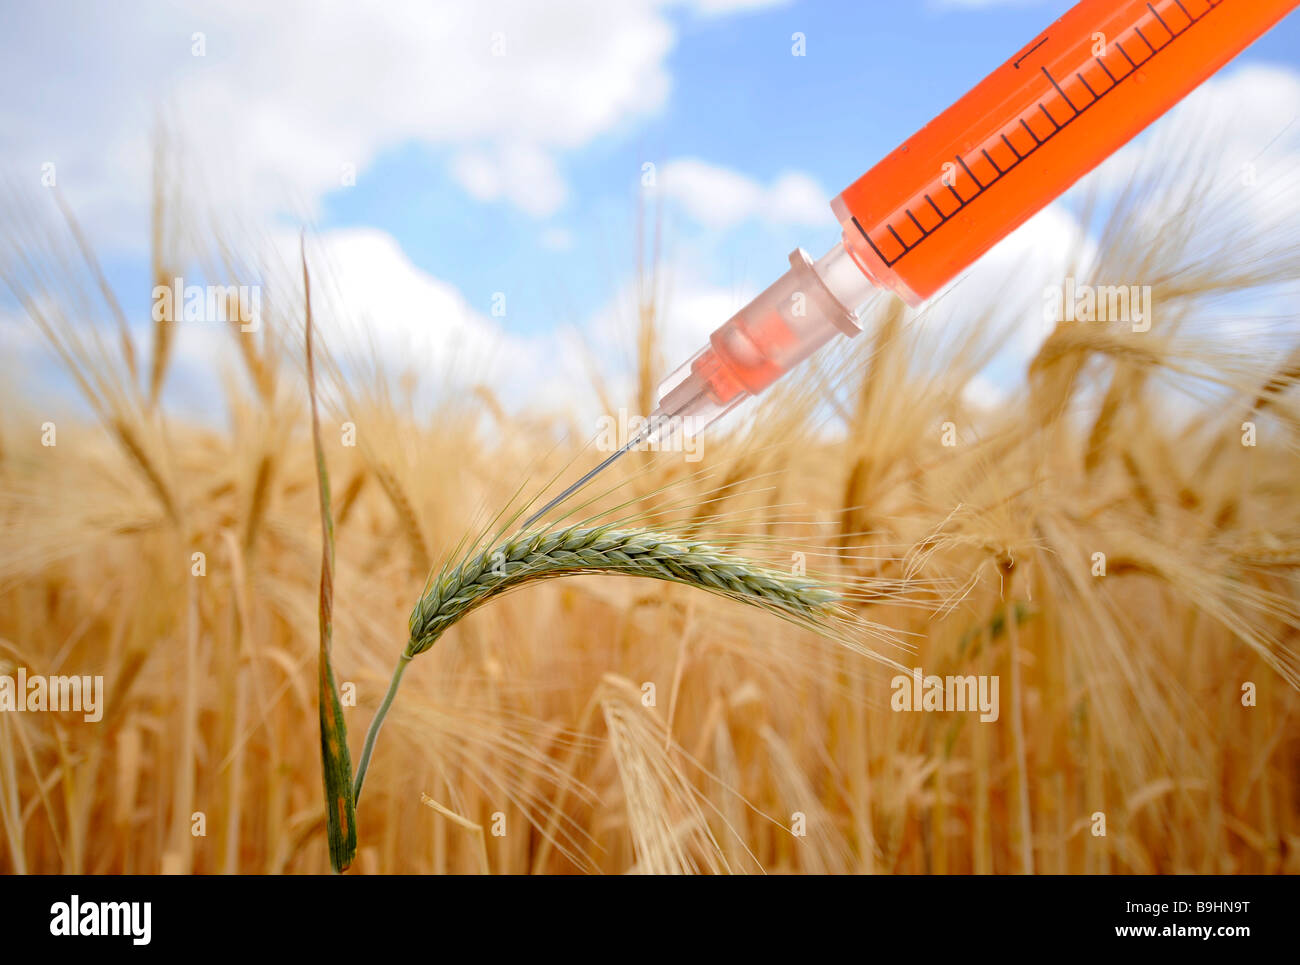 Symbol For Genetically Modified Food Stock Photos & Symbol